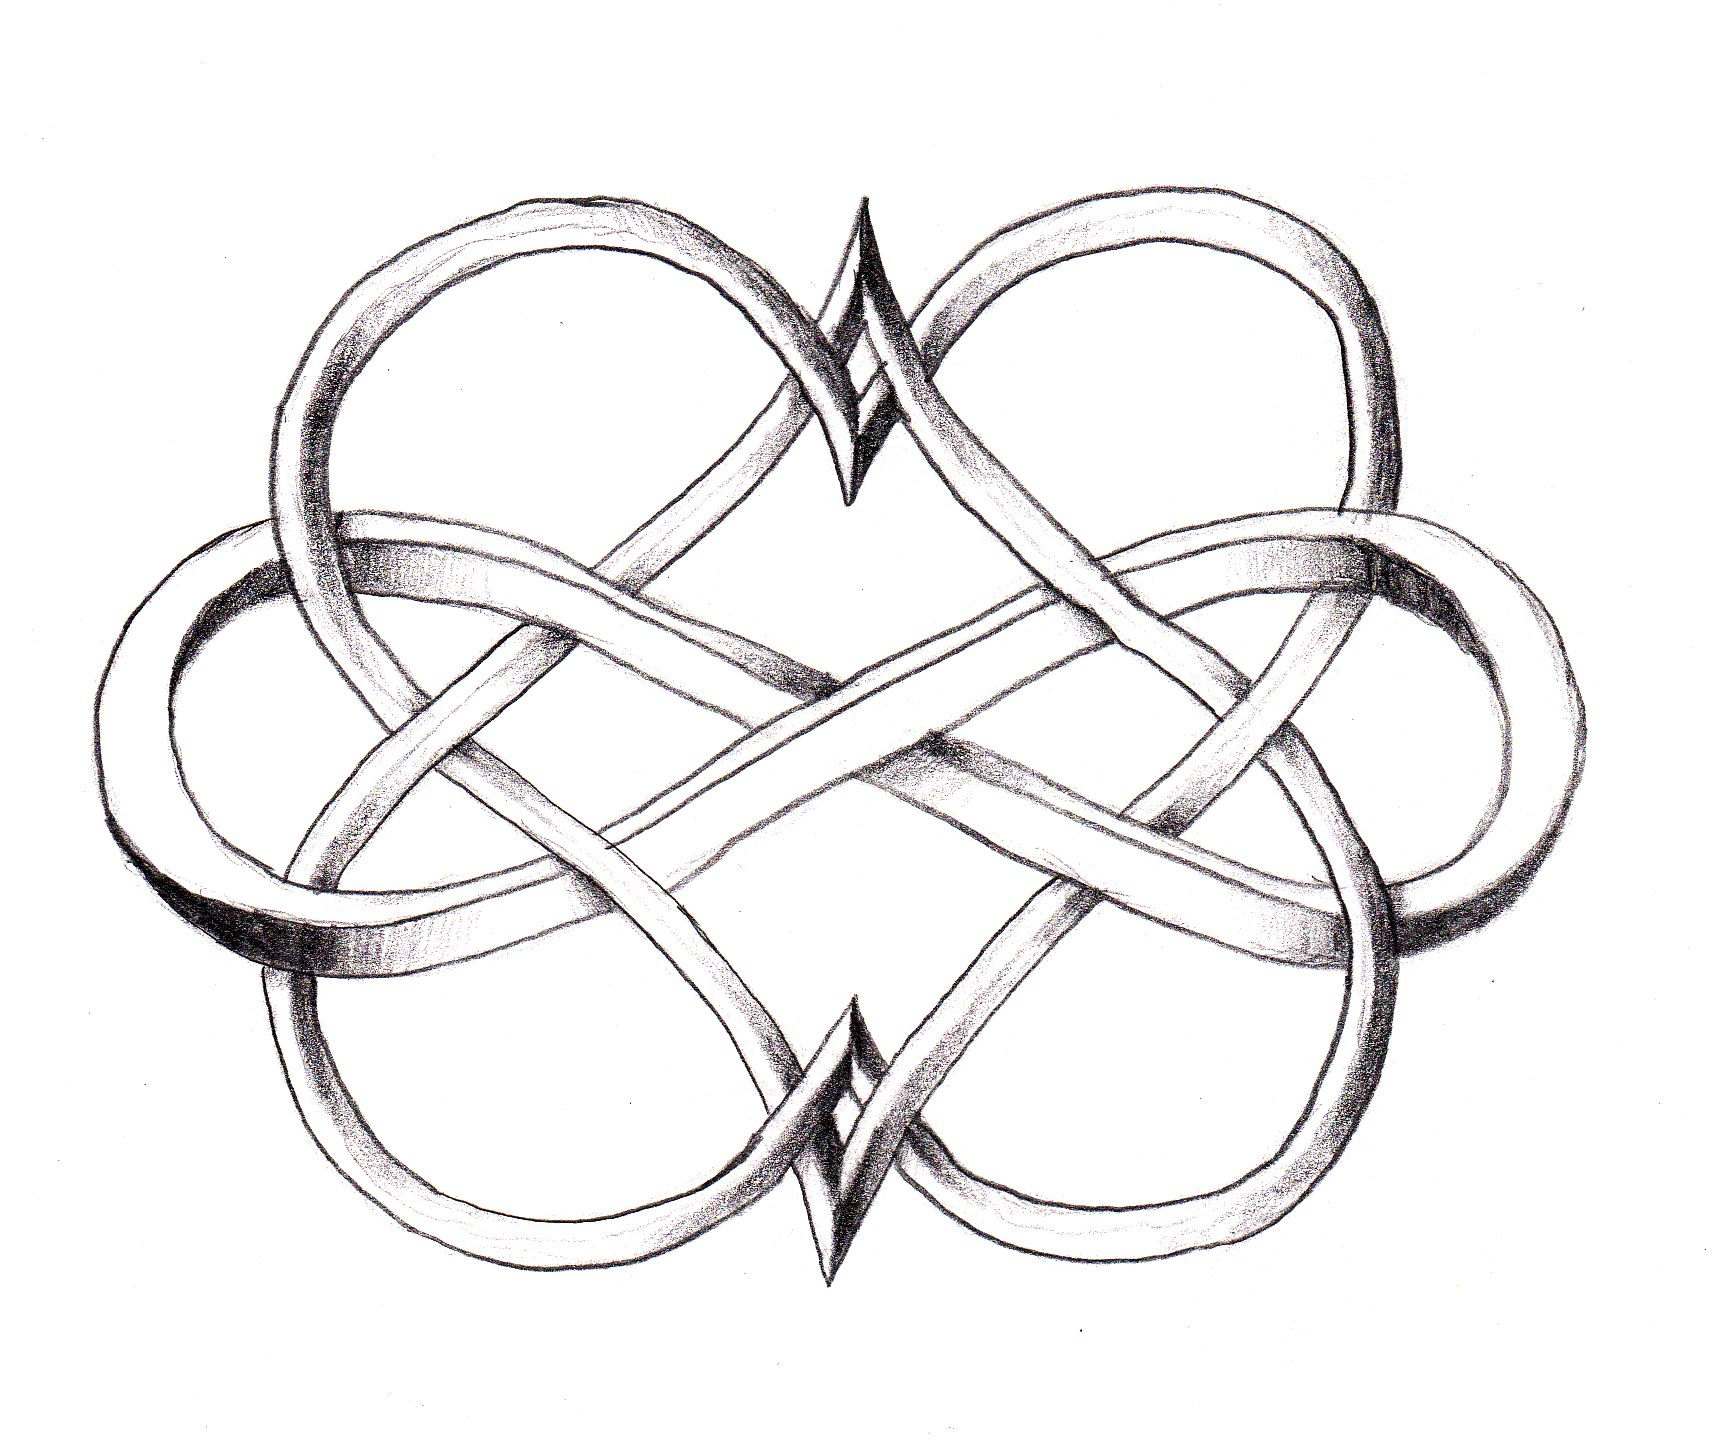 Infinity symbol meaning tattoo gallery symbol and sign ideas infinity intertwined with hearts love this tattoos pinterest i love this double heart infinity idea id biocorpaavc Choice Image